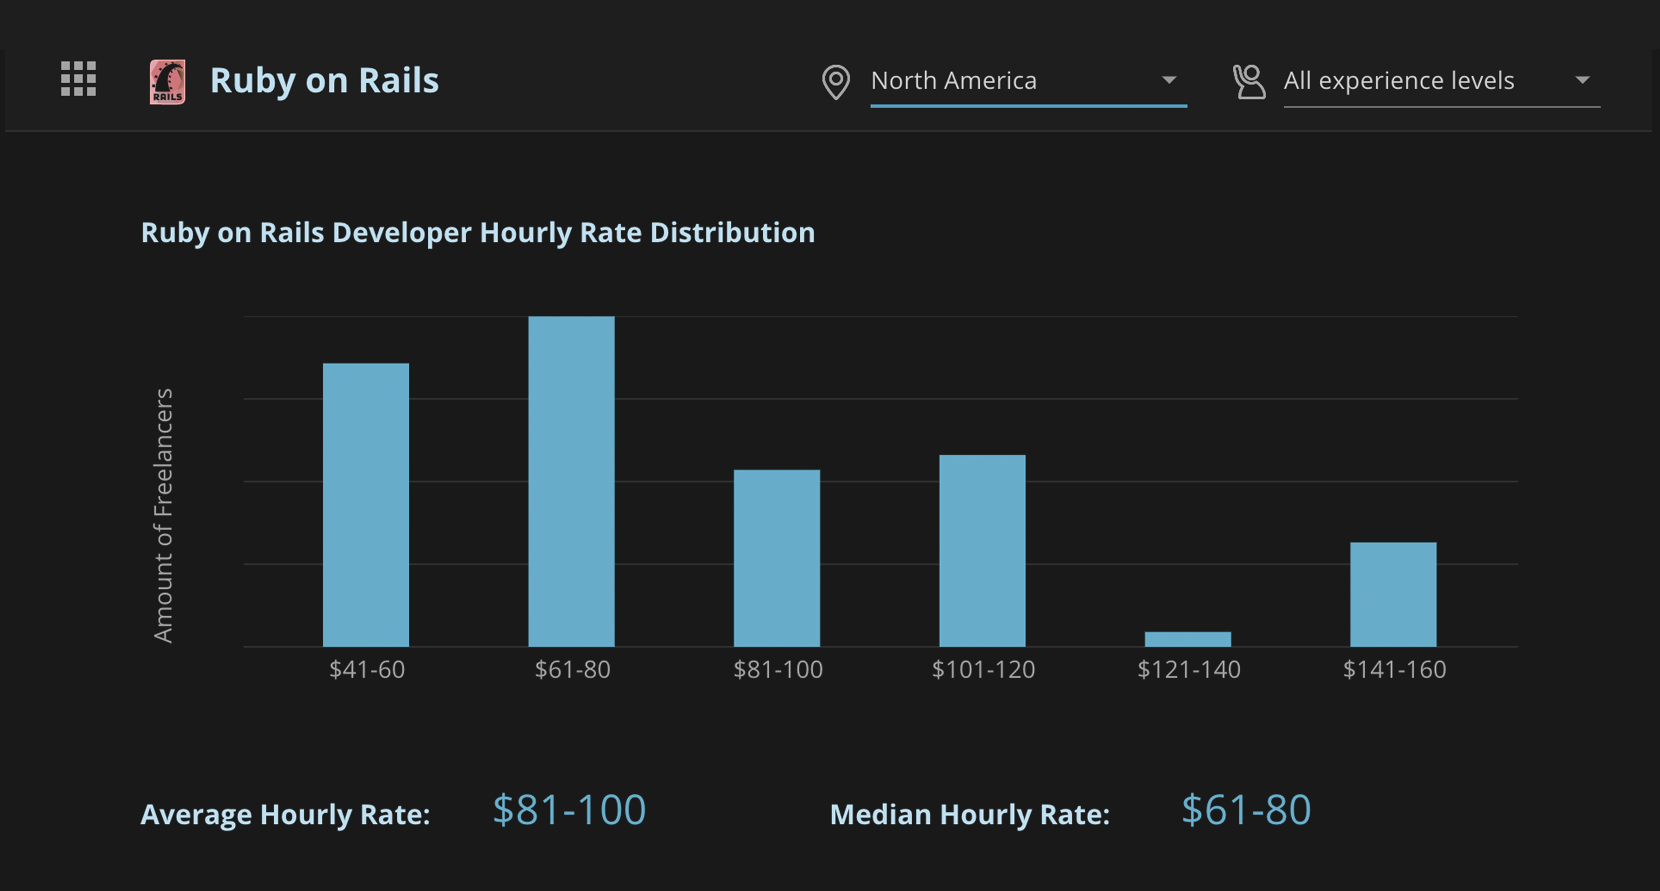 Hourly rate for ruby on rail devs